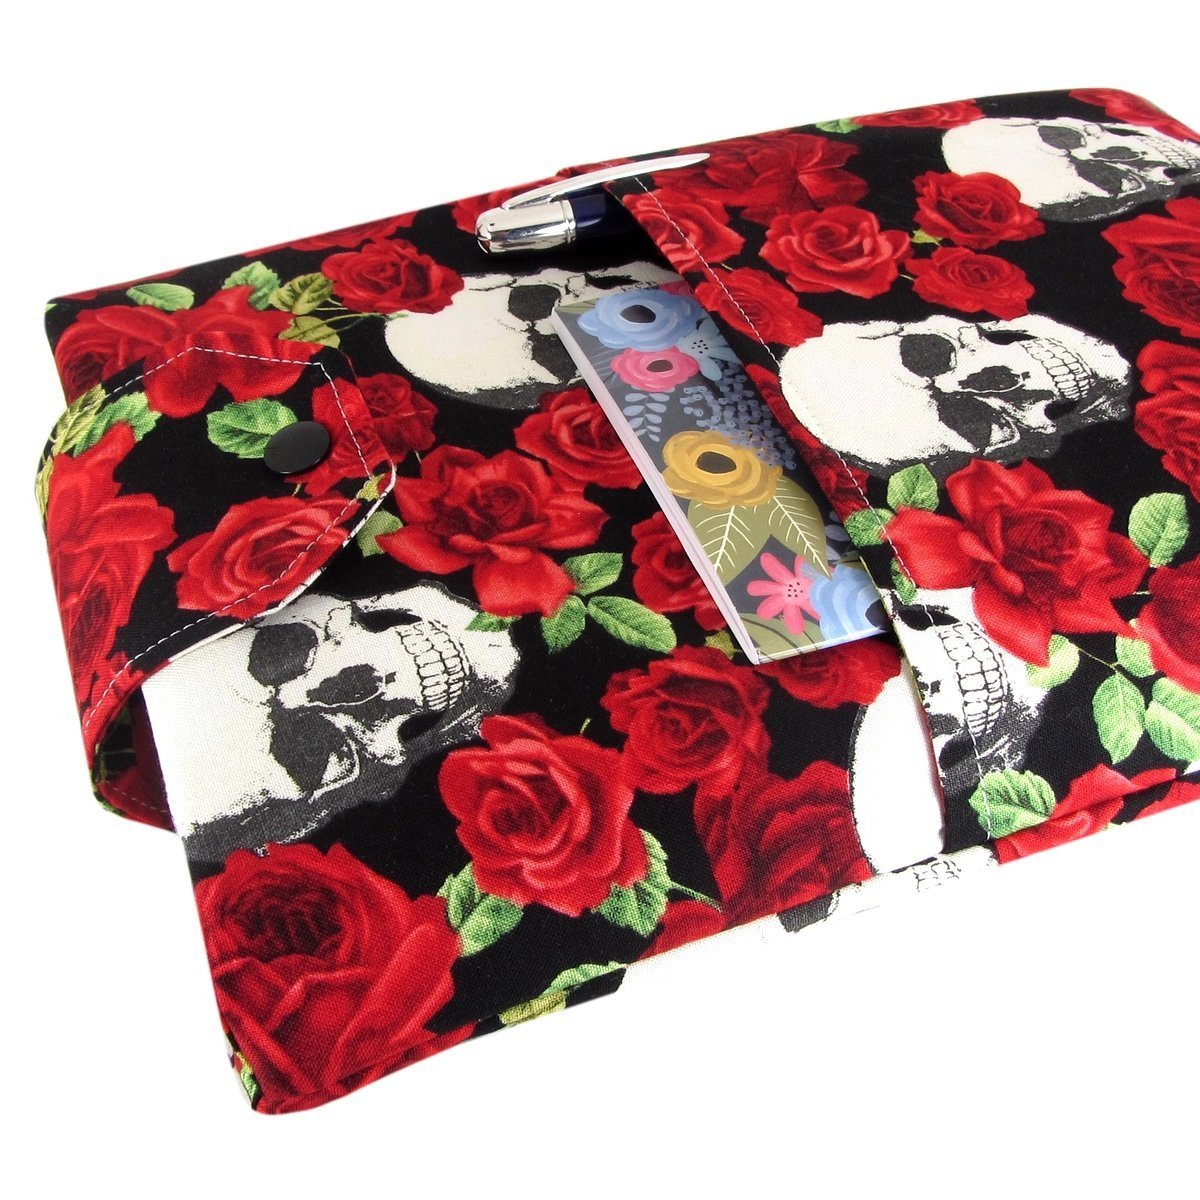 Handmade Fabric Book Sleeve - Perfect For Hardbacks Or Large Paperbacks - Padded, Skull Roses Print